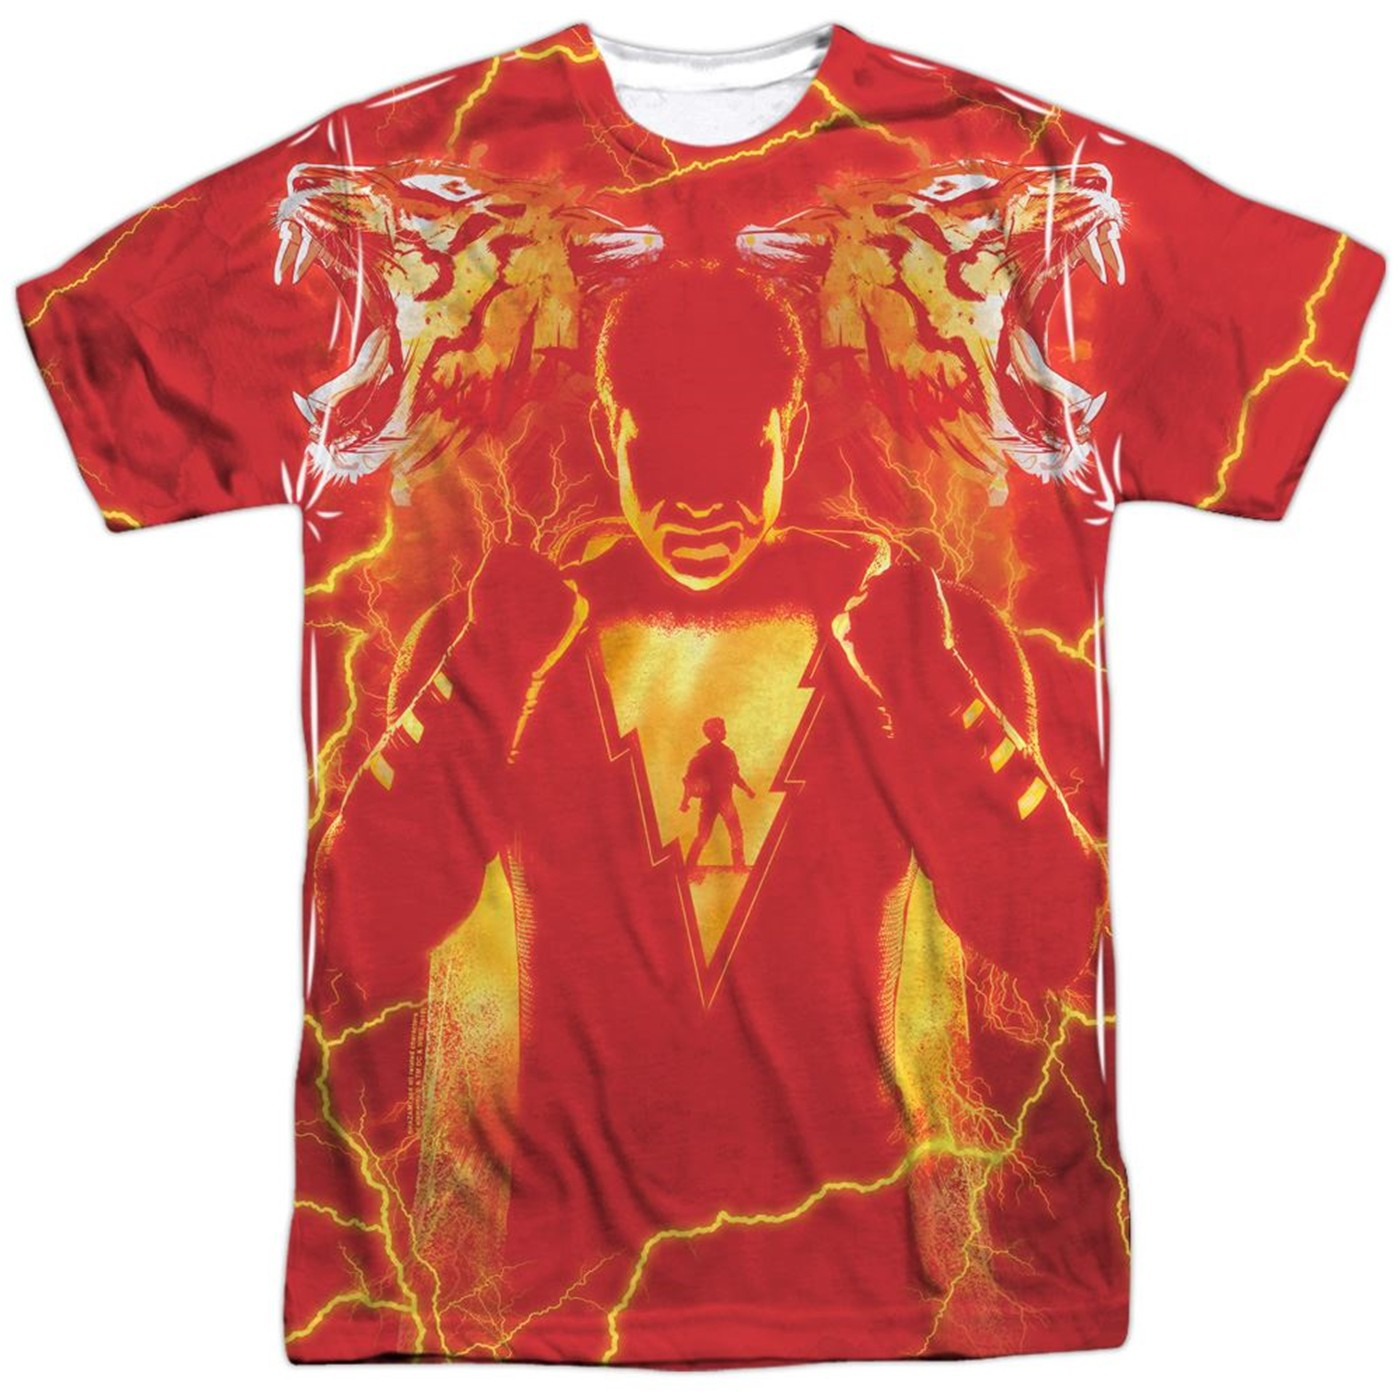 Shazam Movie What's Inside Sublimated Front and Back Print Men's T-Shirt